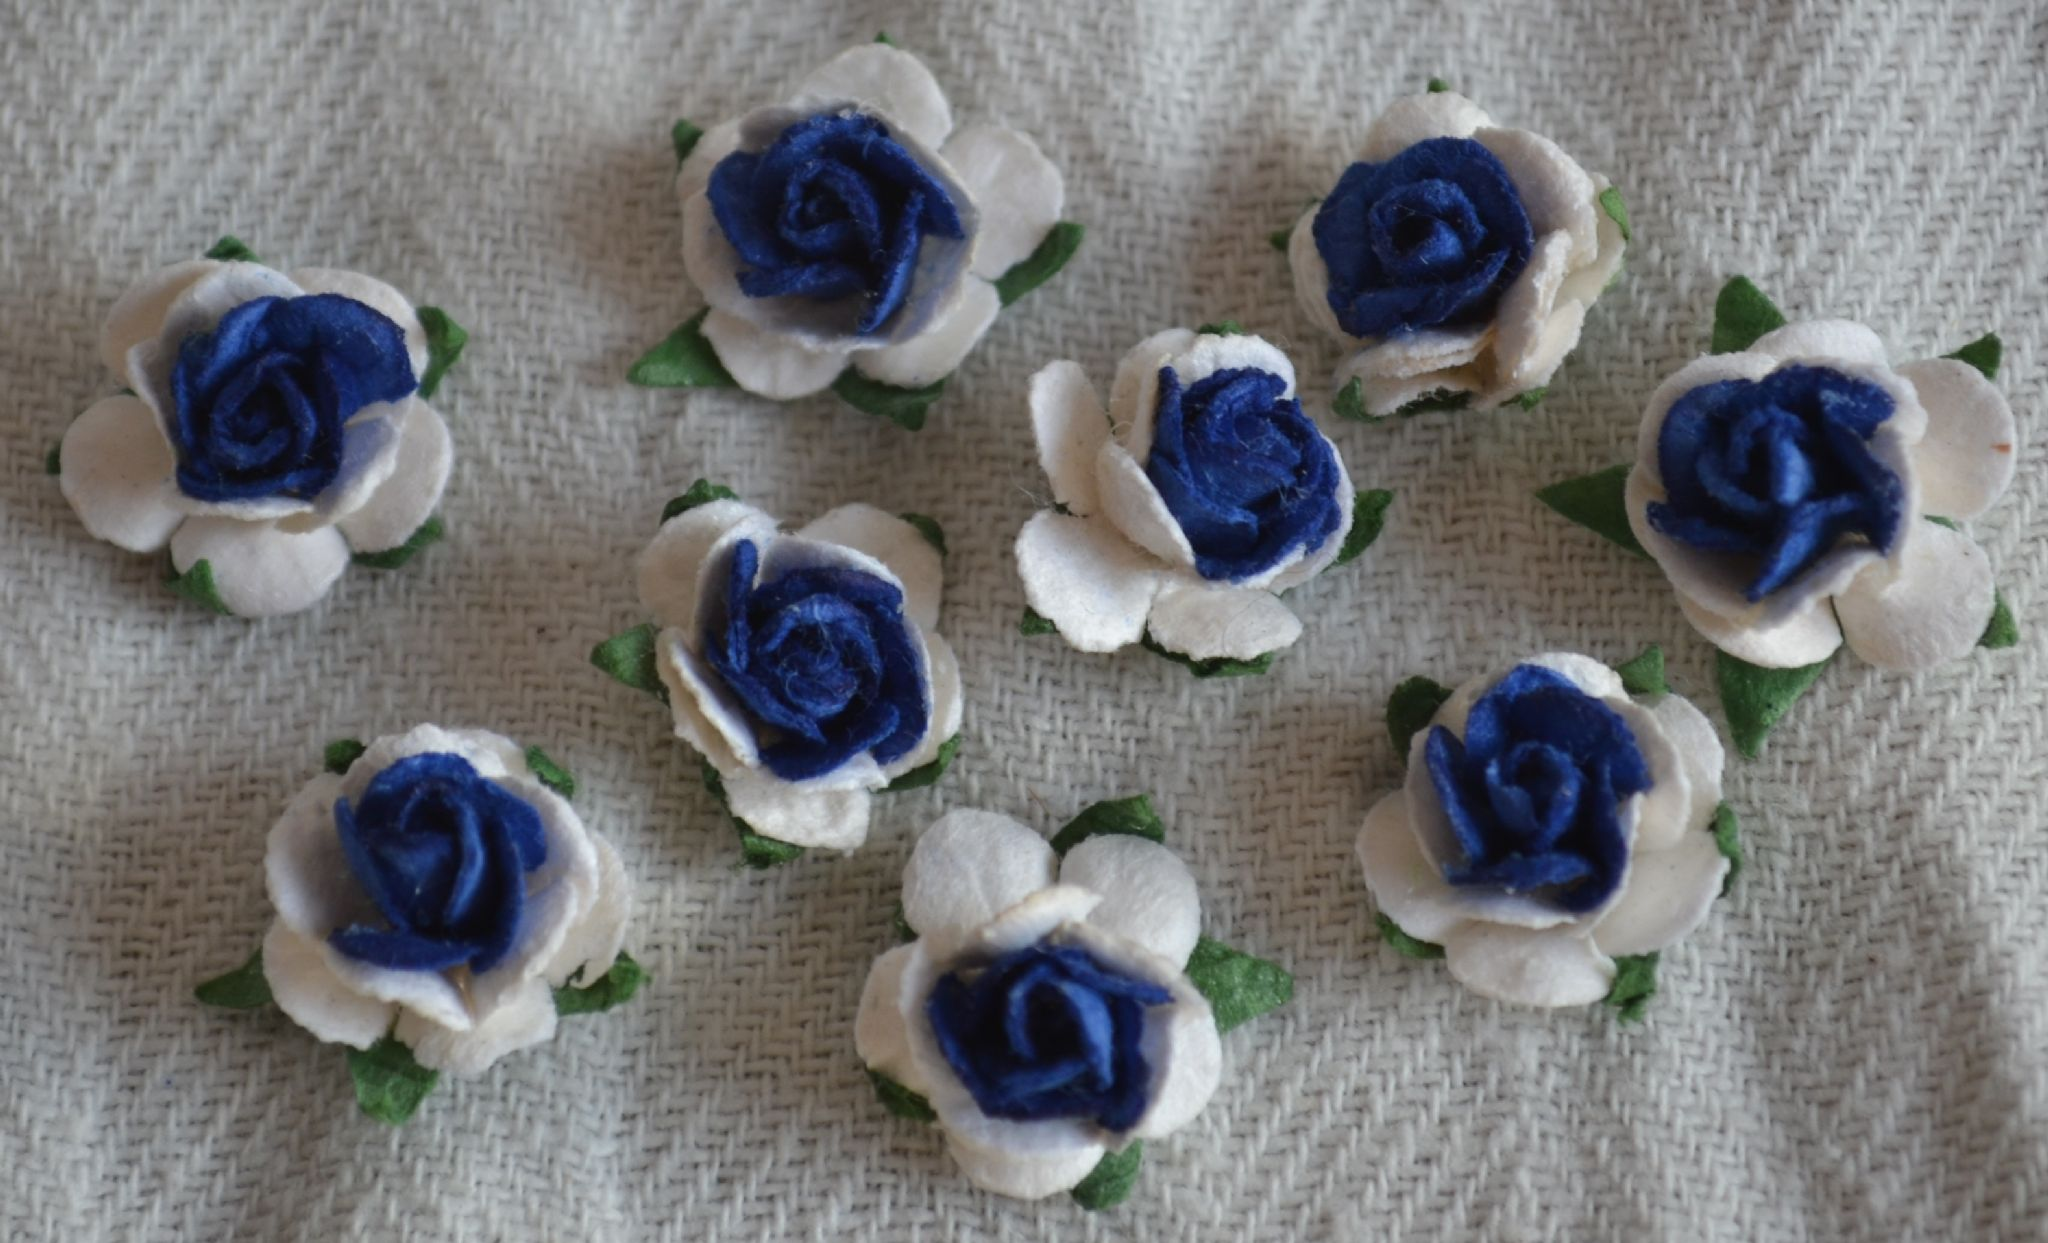 b4d7aaf7478f 1.5cm WHITE ROYAL BLUE CENTER Mulberry Paper Roses (only flower head)